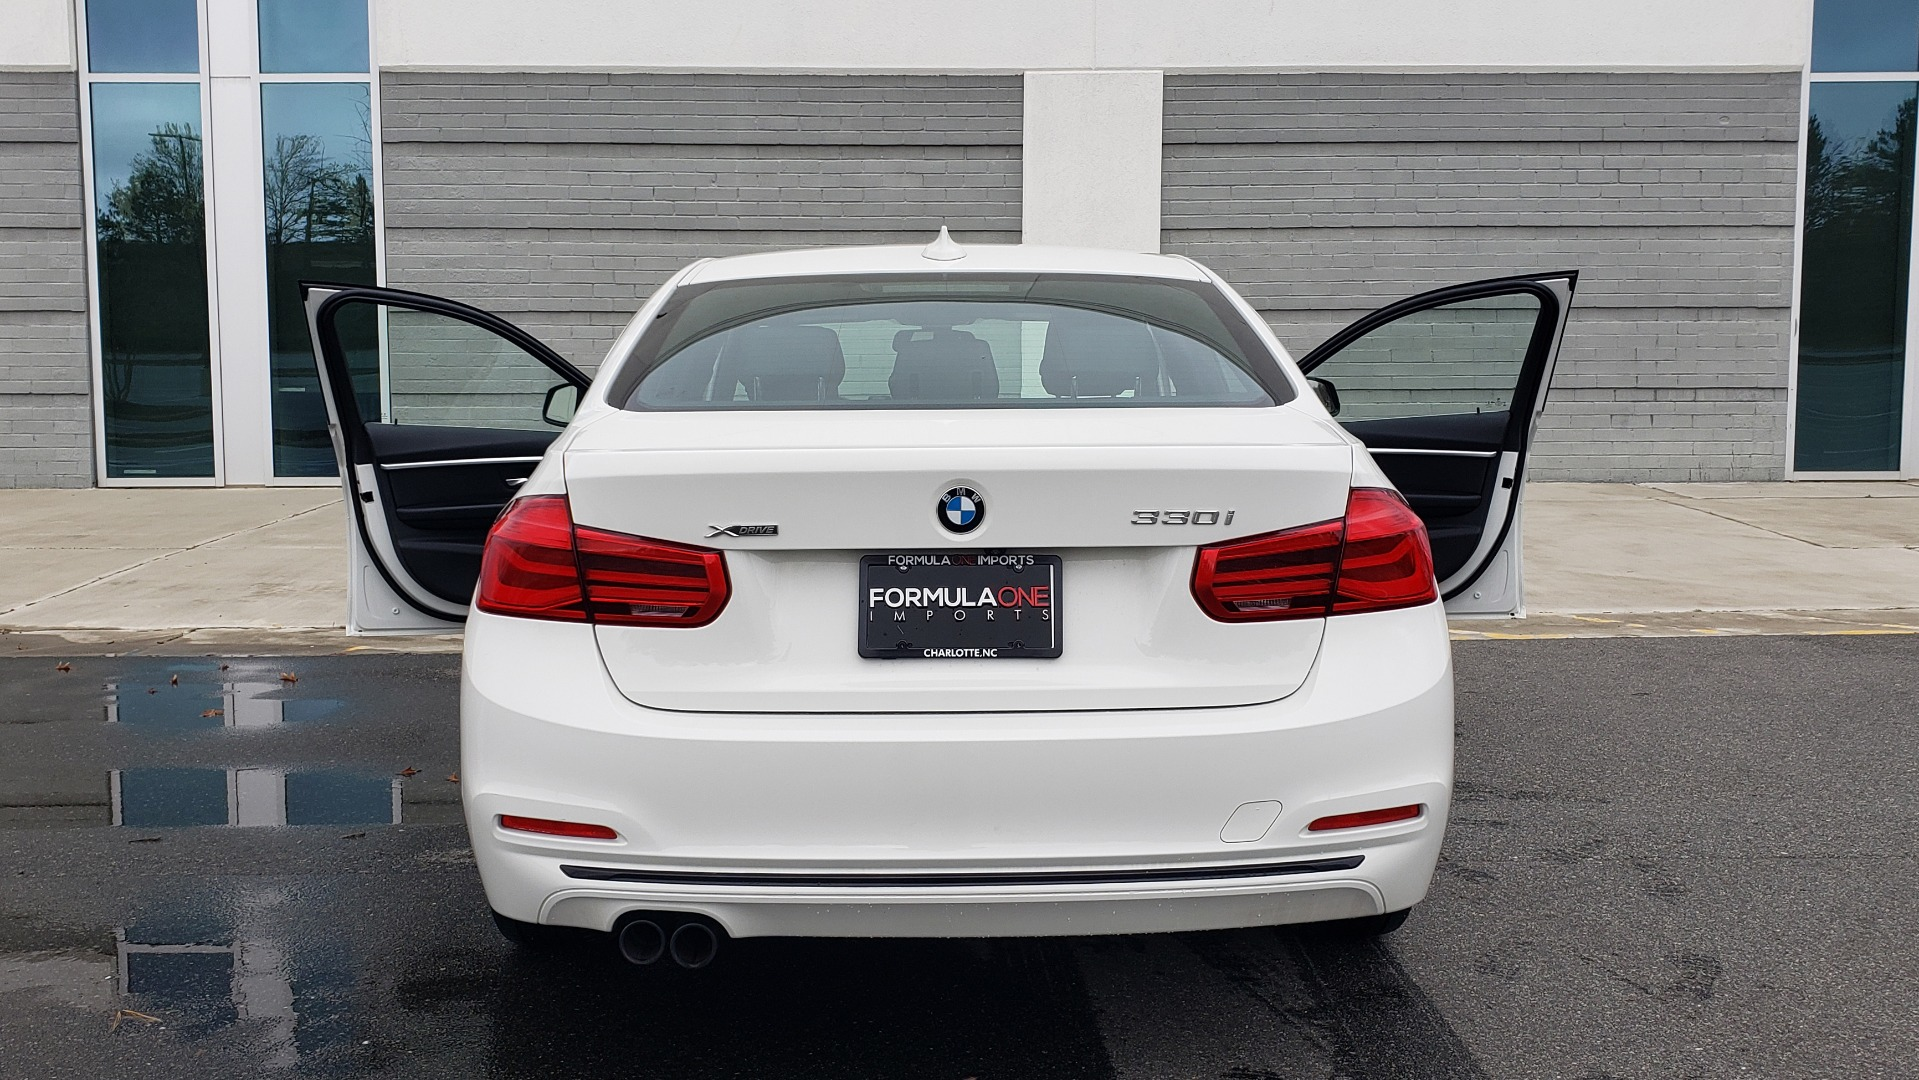 Used 2018 BMW 3 SERIES 330I XDRIVE / CONV PKG / SUNROOF / HTD STS / REARVIEW for sale $24,795 at Formula Imports in Charlotte NC 28227 27